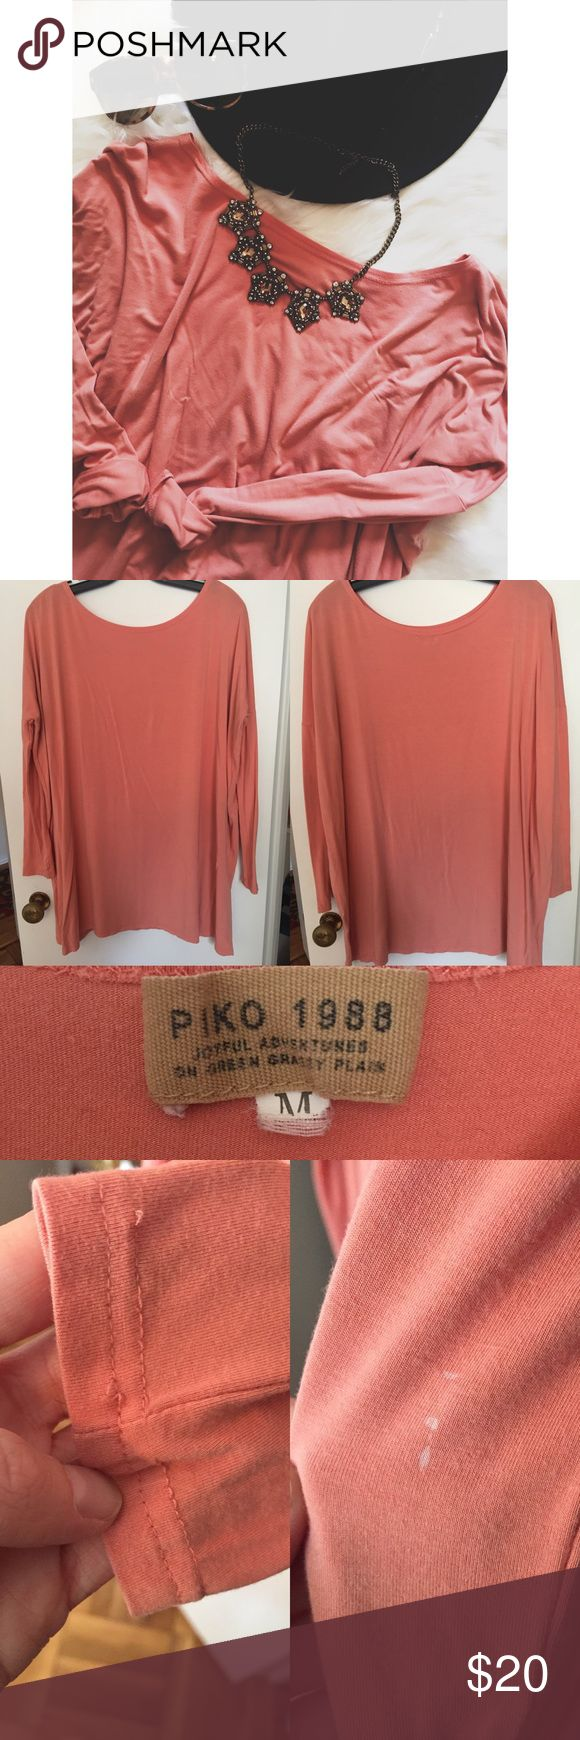 """Piko Just Peachy Slouchy Dress Lovely Piko Slouchy tee dress! Personally, it is not long enough for me to wear as a dress (I am 5'8""""), but I wore it was a long tunic with jeans and leggings. So cute! Pre-loved, so it does have to wear and tear. There are stitches popped on one sleeve and a bleach spot (see photos). Otherwise, it is in good condition. Purchased from a boutique in Springfield, MO called Staxx (the last photo is their ad). So adorable! Piko 1988 Dresses Mini"""